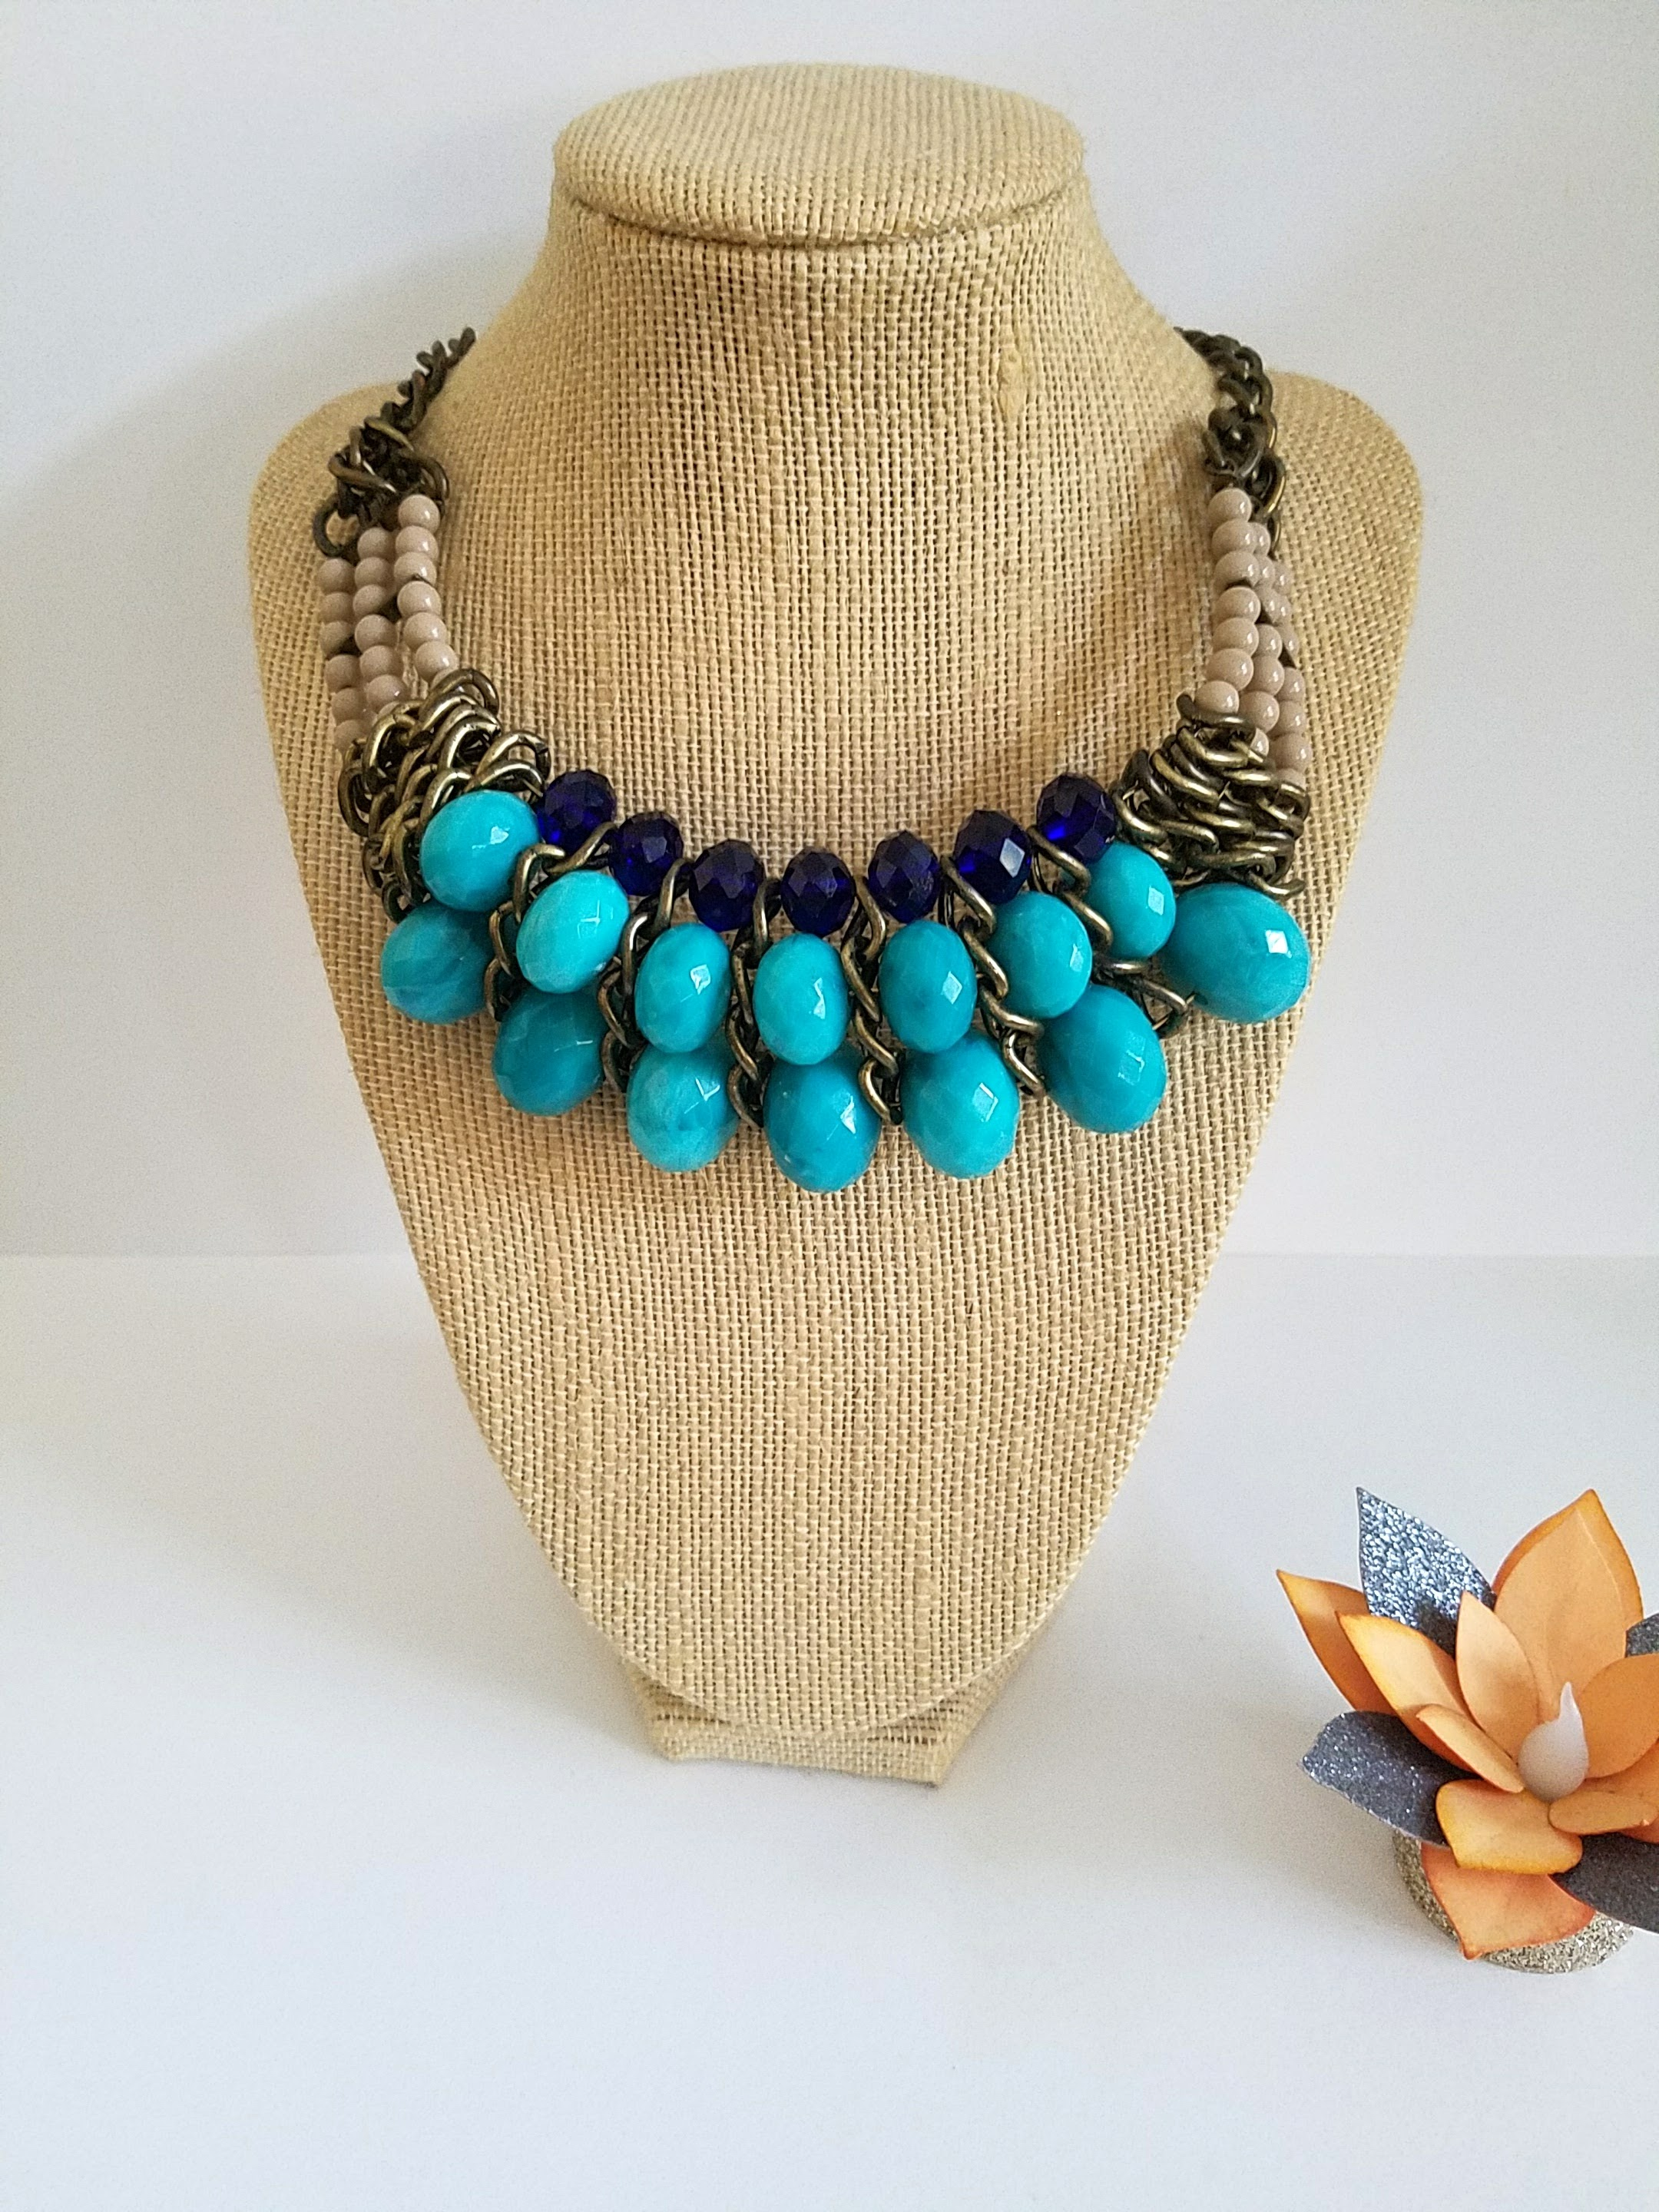 Vintage Bib Statement Necklace